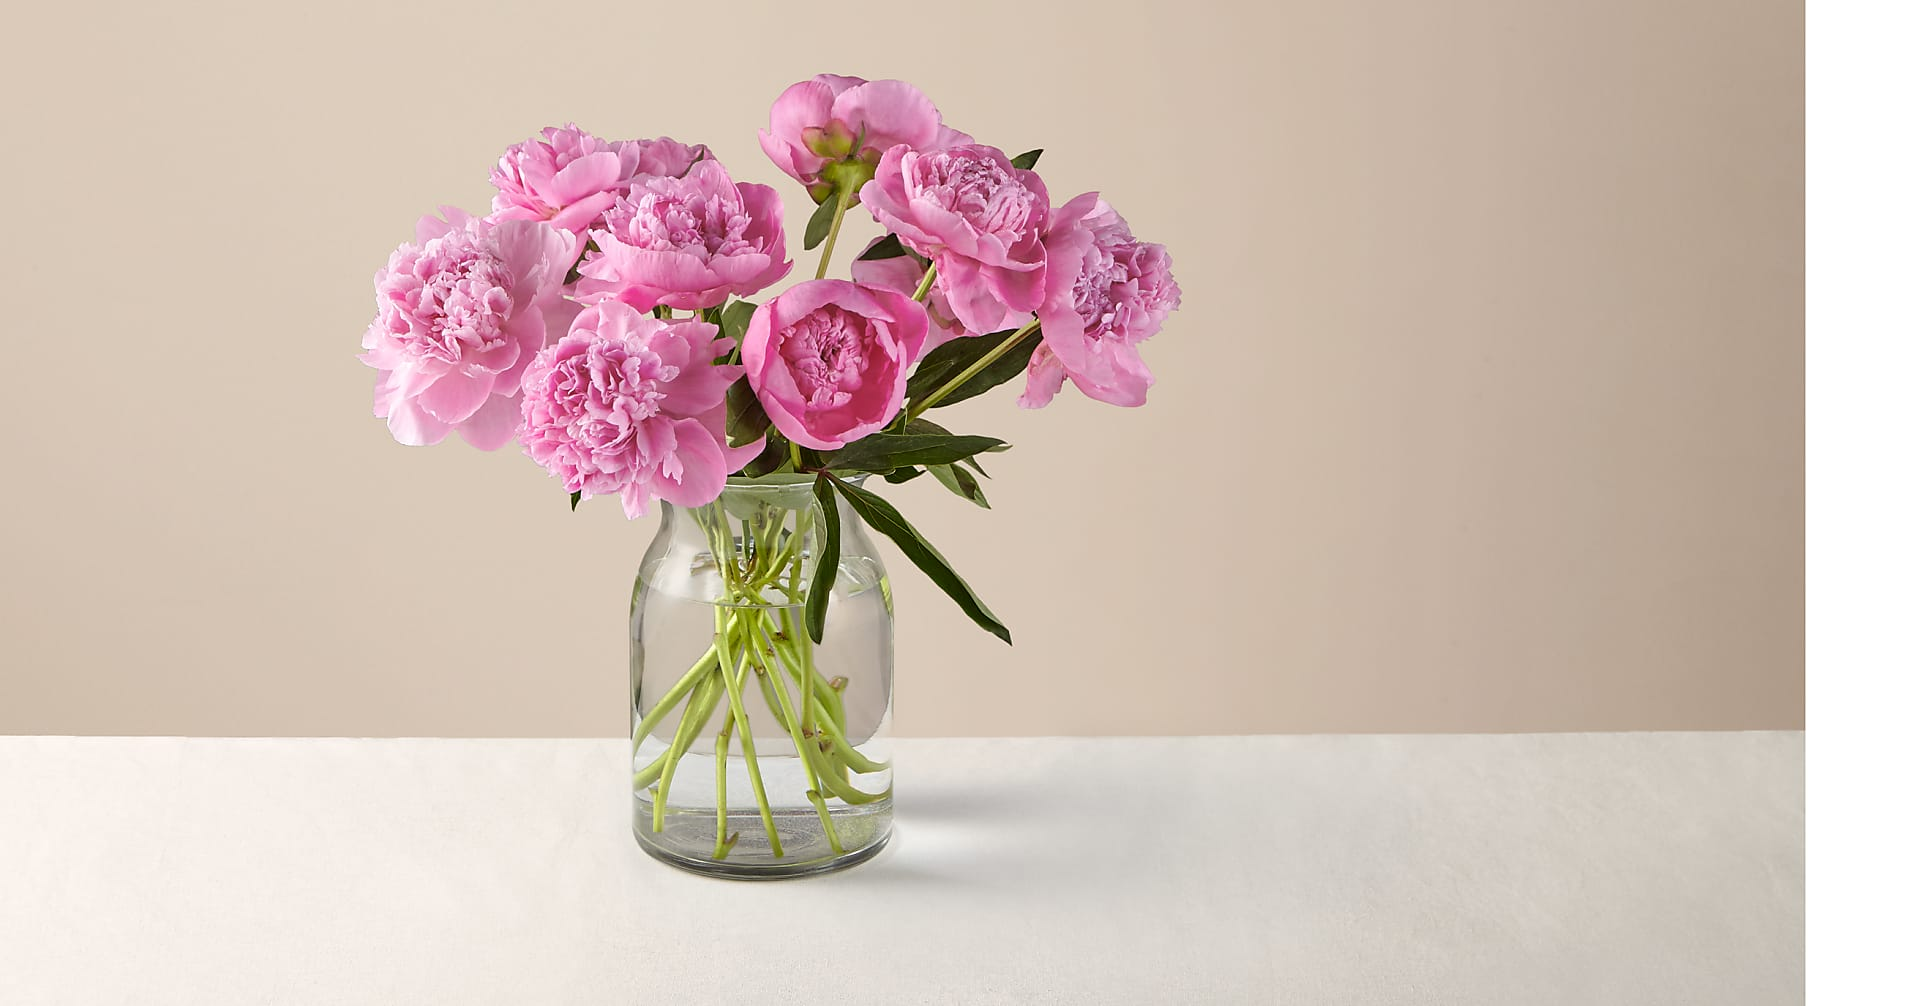 In Full Bloom Peony Bouquet - Image 1 Of 3